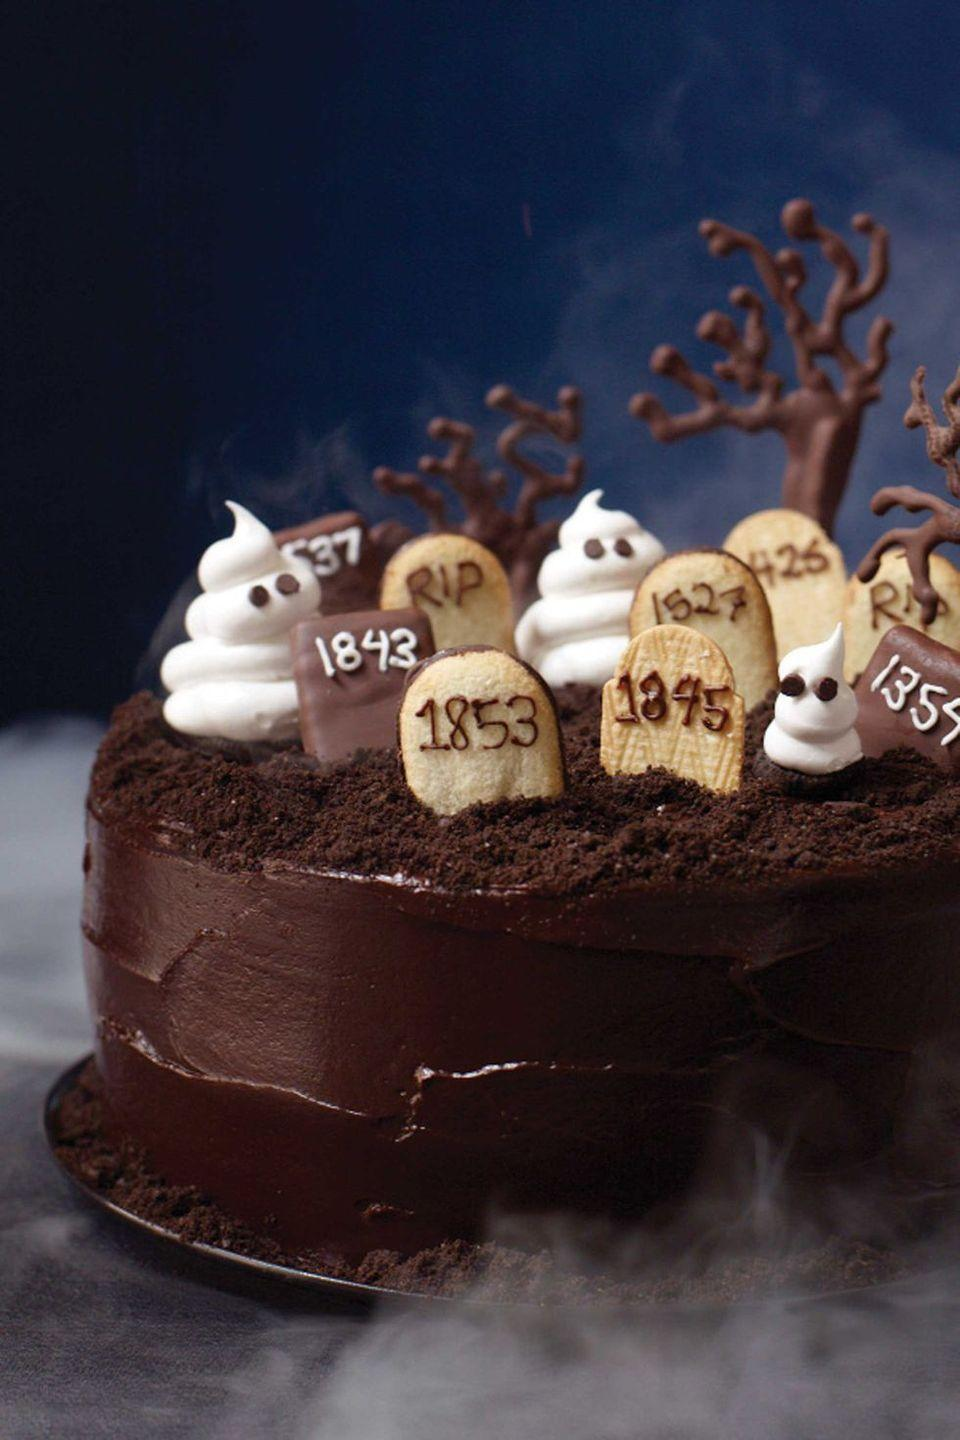 """<p>Bury those chocolate cravings for good with this rich layer cake that's spook-tacular for Halloween and a sensational choice year-round with an espresso-tinged batter and bittersweet chocolate frosting. Just don't include the mini graveyard during the other months of the year.</p><p><a href=""""https://www.womansday.com/food-recipes/food-drinks/recipes/a11822/graveyard-cake-recipe-123437/"""" rel=""""nofollow noopener"""" target=""""_blank"""" data-ylk=""""slk:Get the recipe for Graveyard Cake."""" class=""""link rapid-noclick-resp""""><em>Get the recipe for Graveyard Cake.</em></a></p>"""